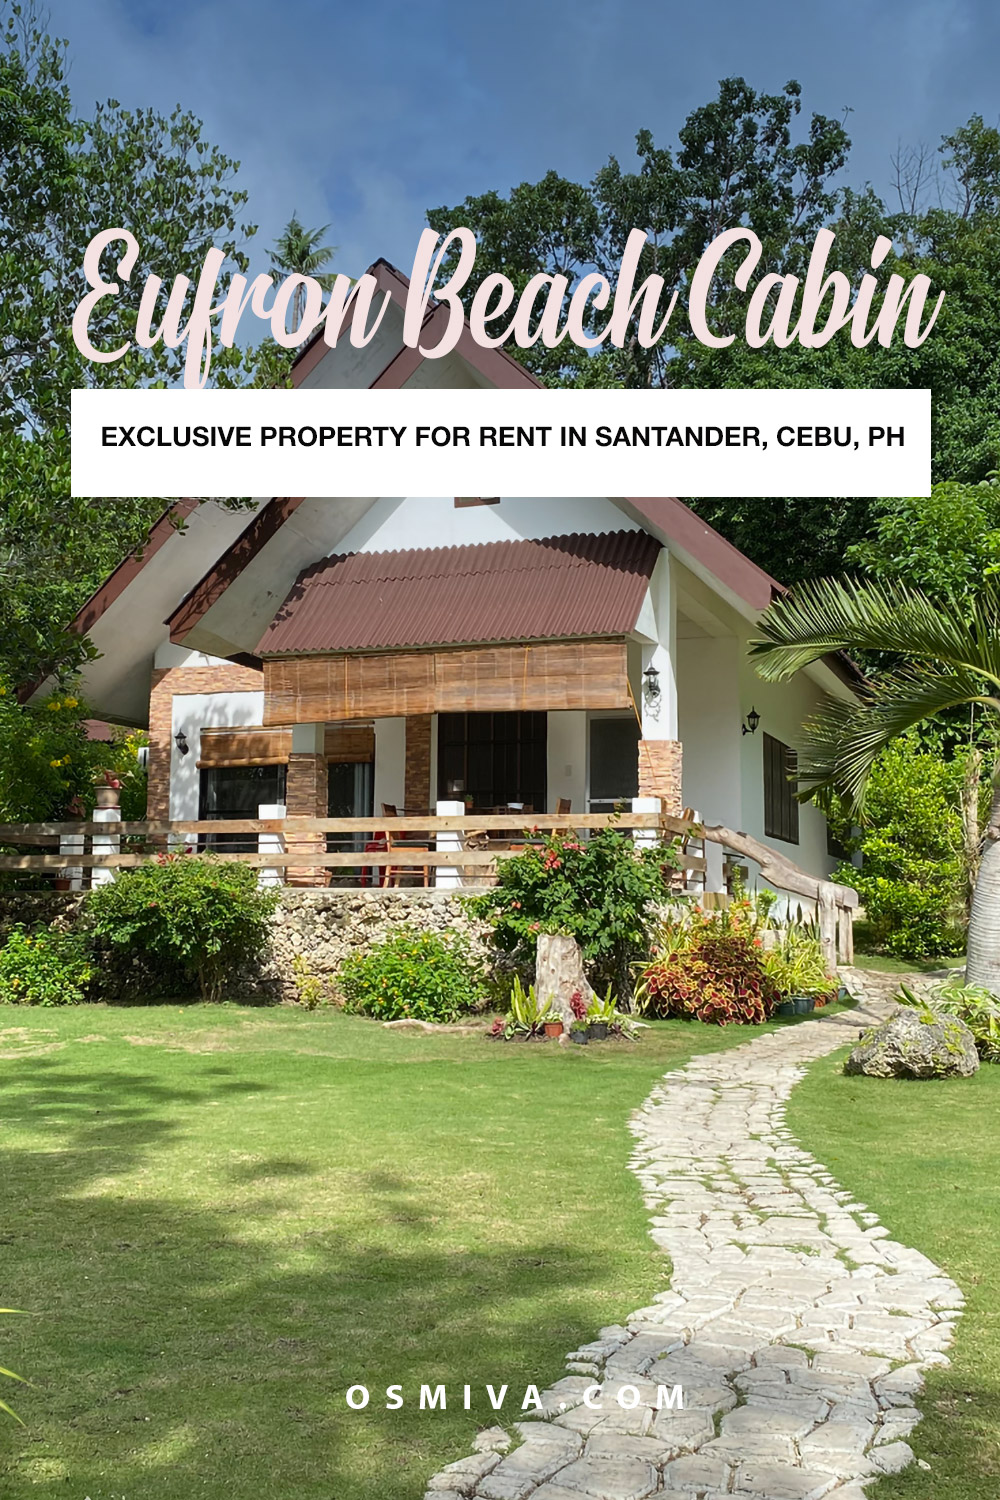 Beach Cabin in Santander Cebu